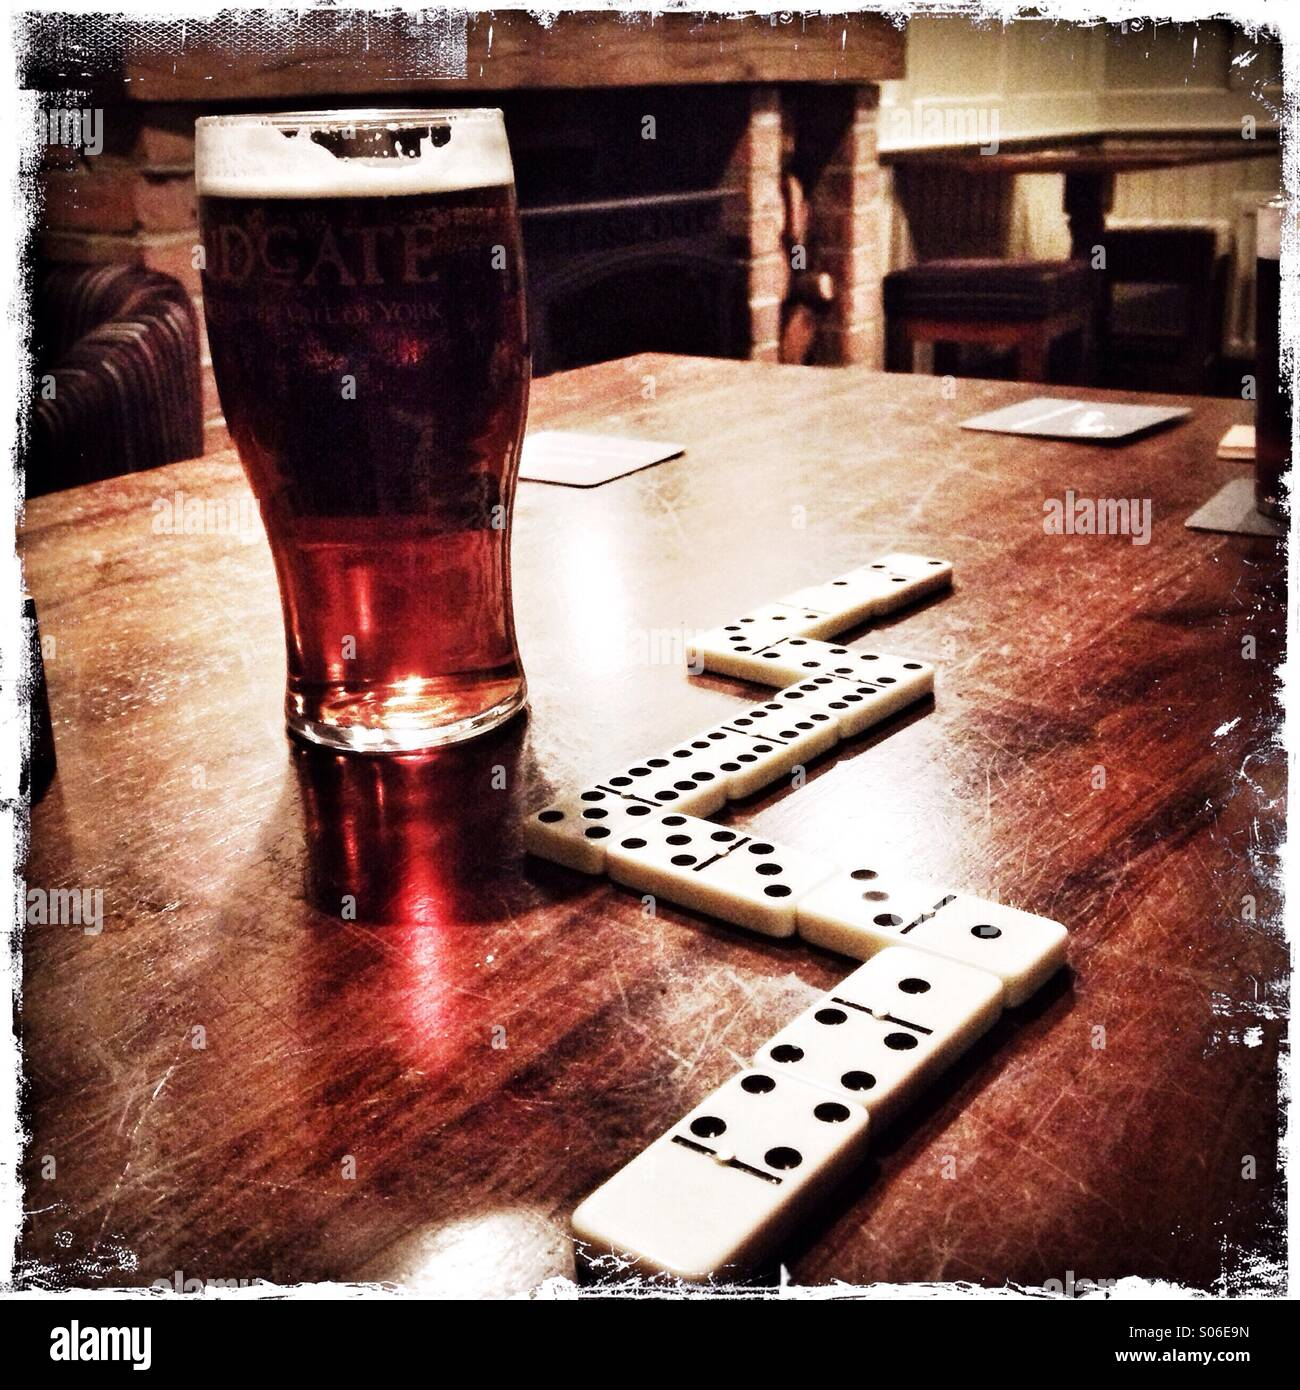 A pint and a game of dominos. - Stock Image